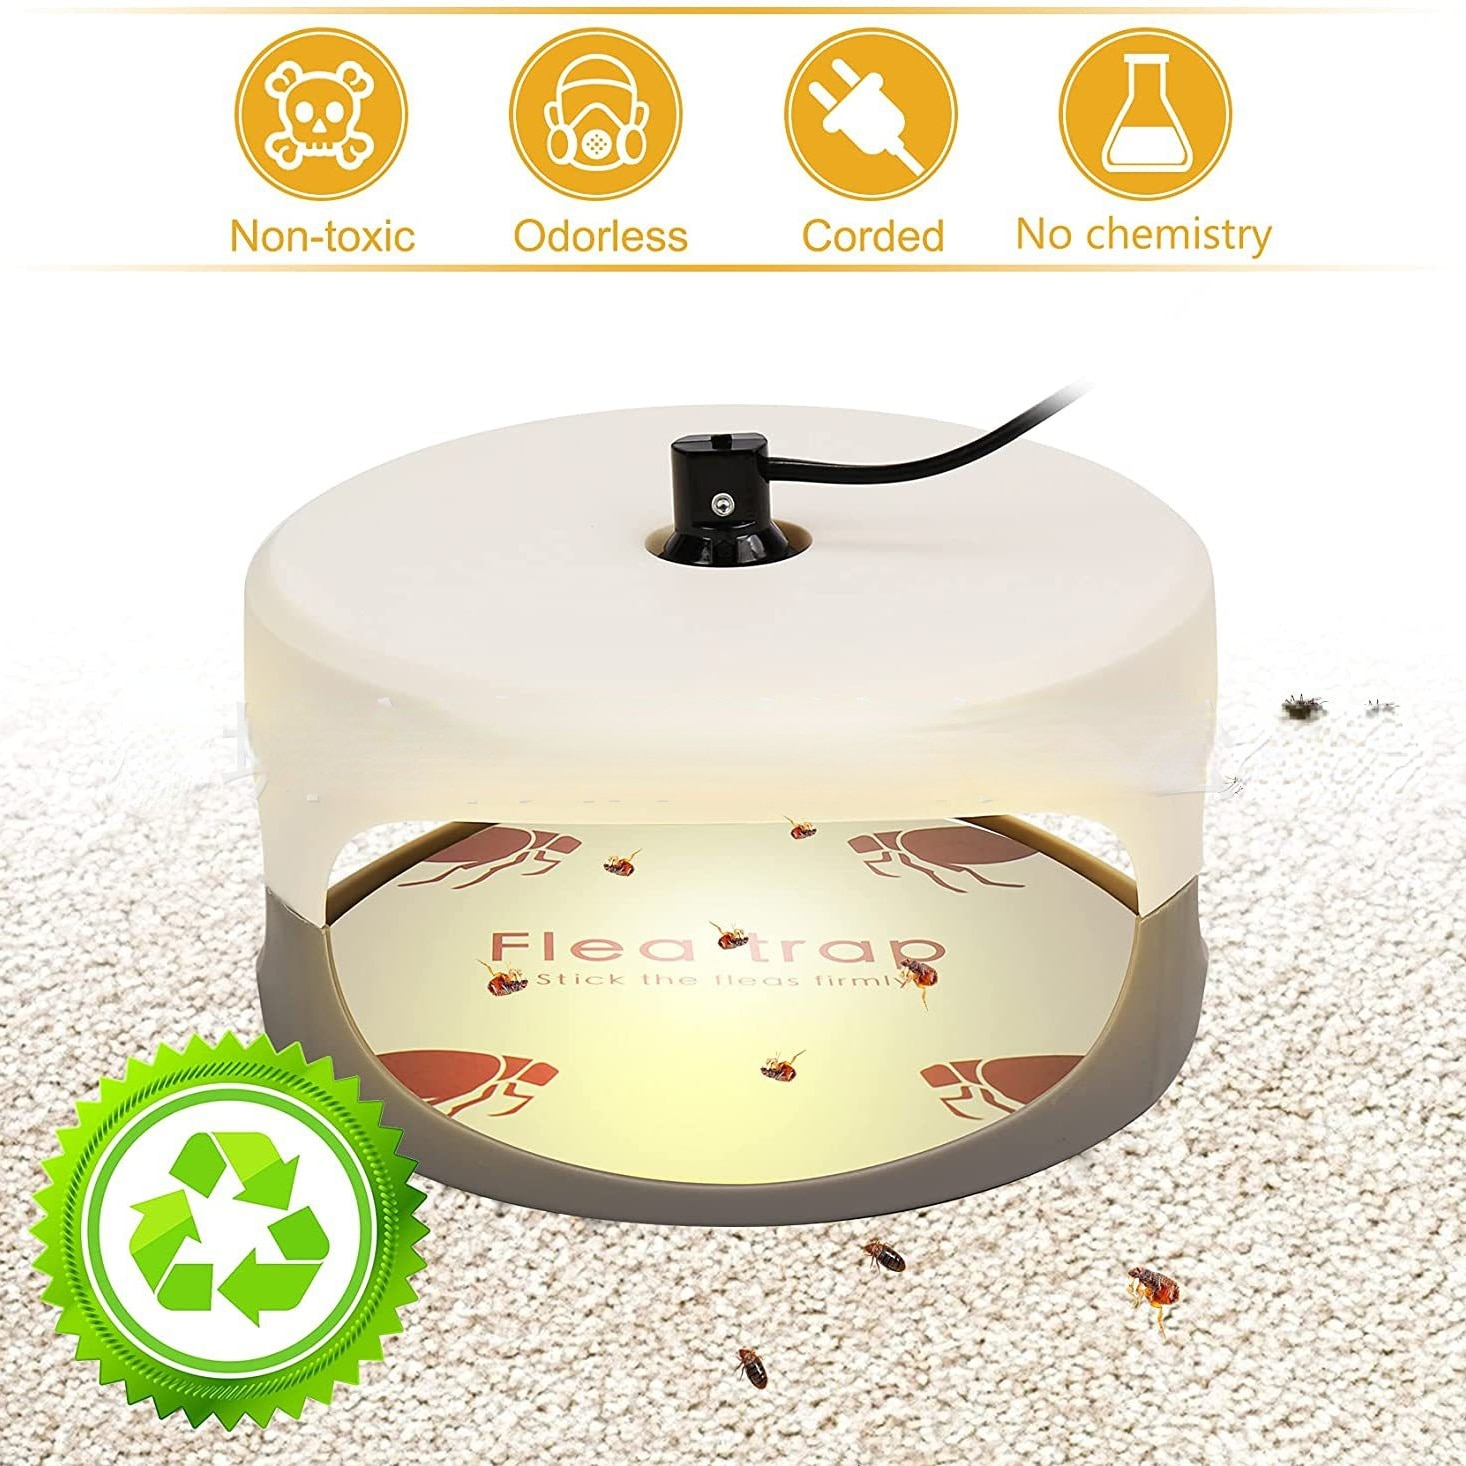 Flea Trap Pet Household Bug Flea Killer Odorless Cleaner For Carpet Bed Cloth Lamp Pesticidefree USB Electric Sticky Trap